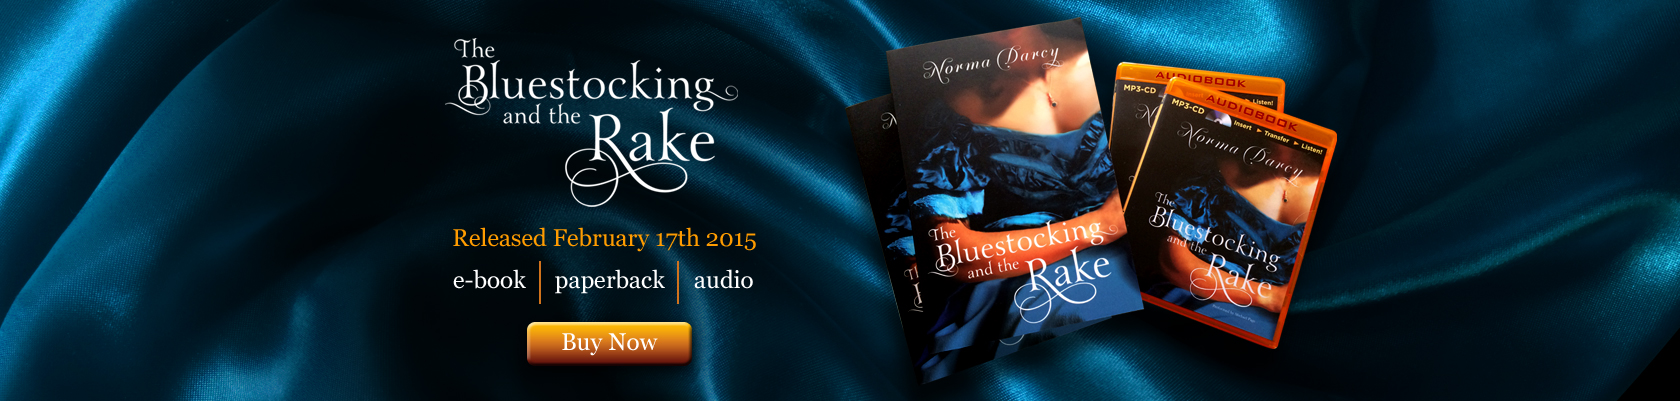 "Buy ""The Bluestocking and the Rake"""